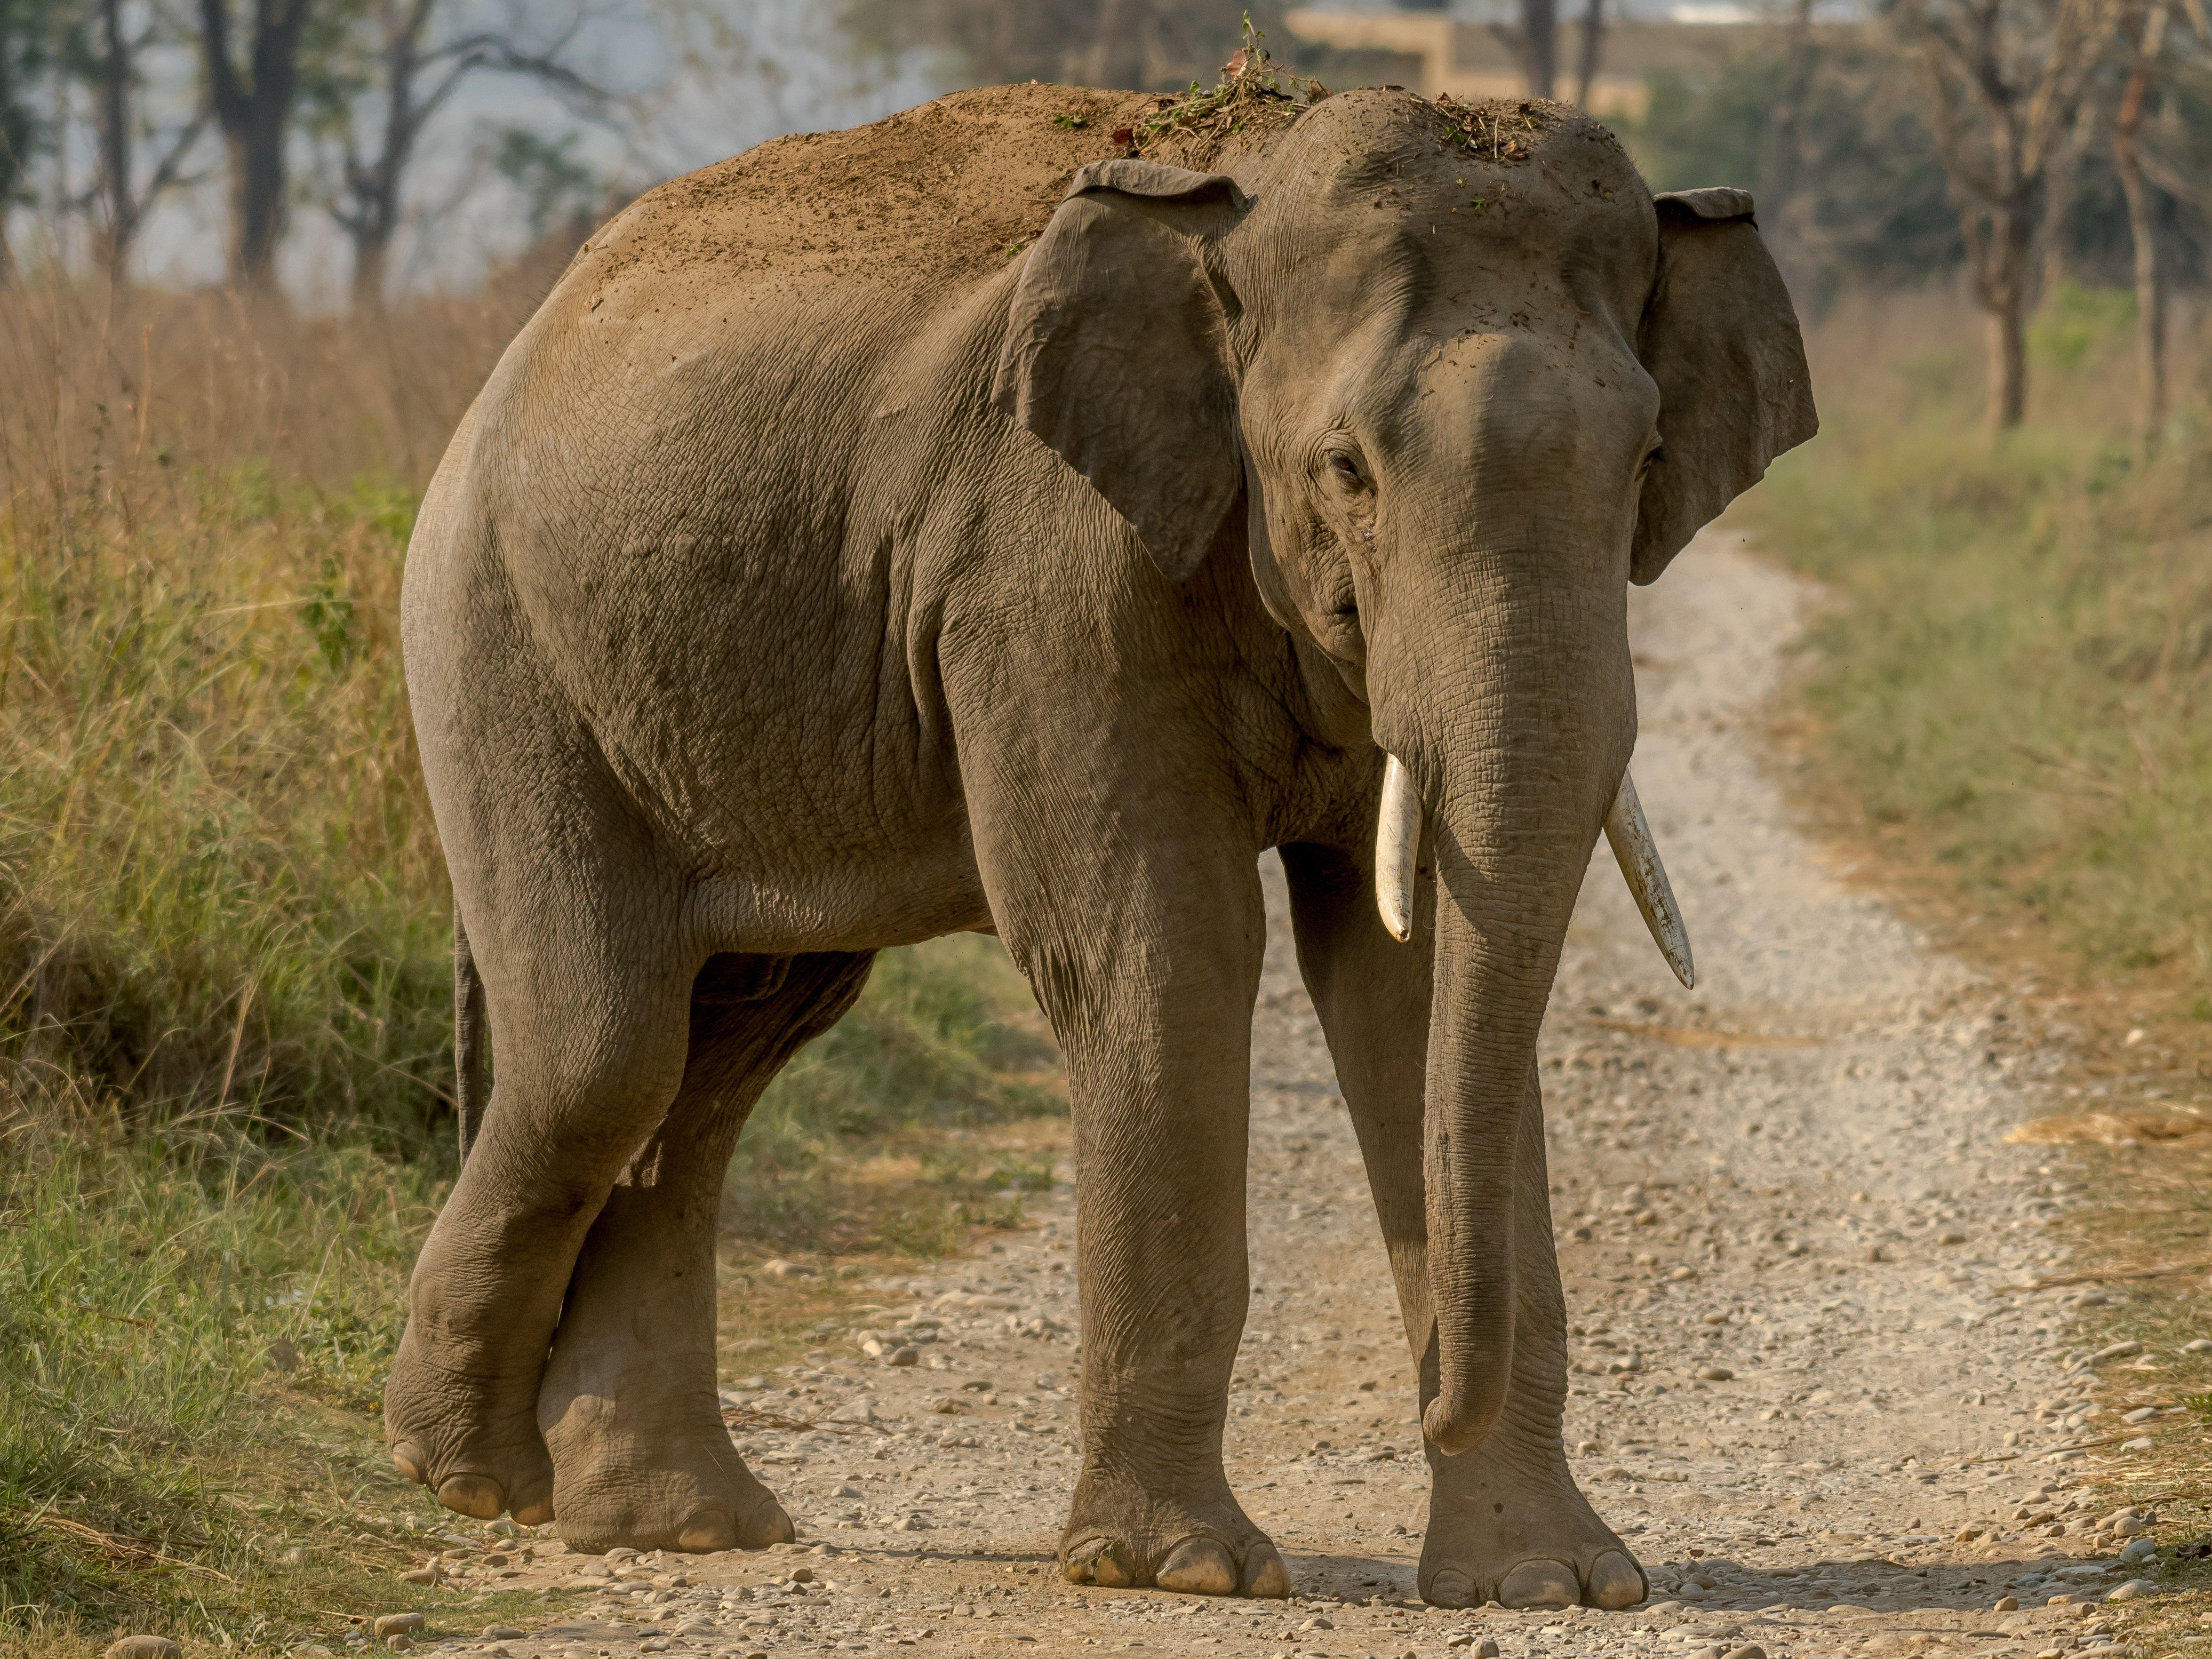 Man Crushed To Death In India After Trying To Take Selfie With Elephant